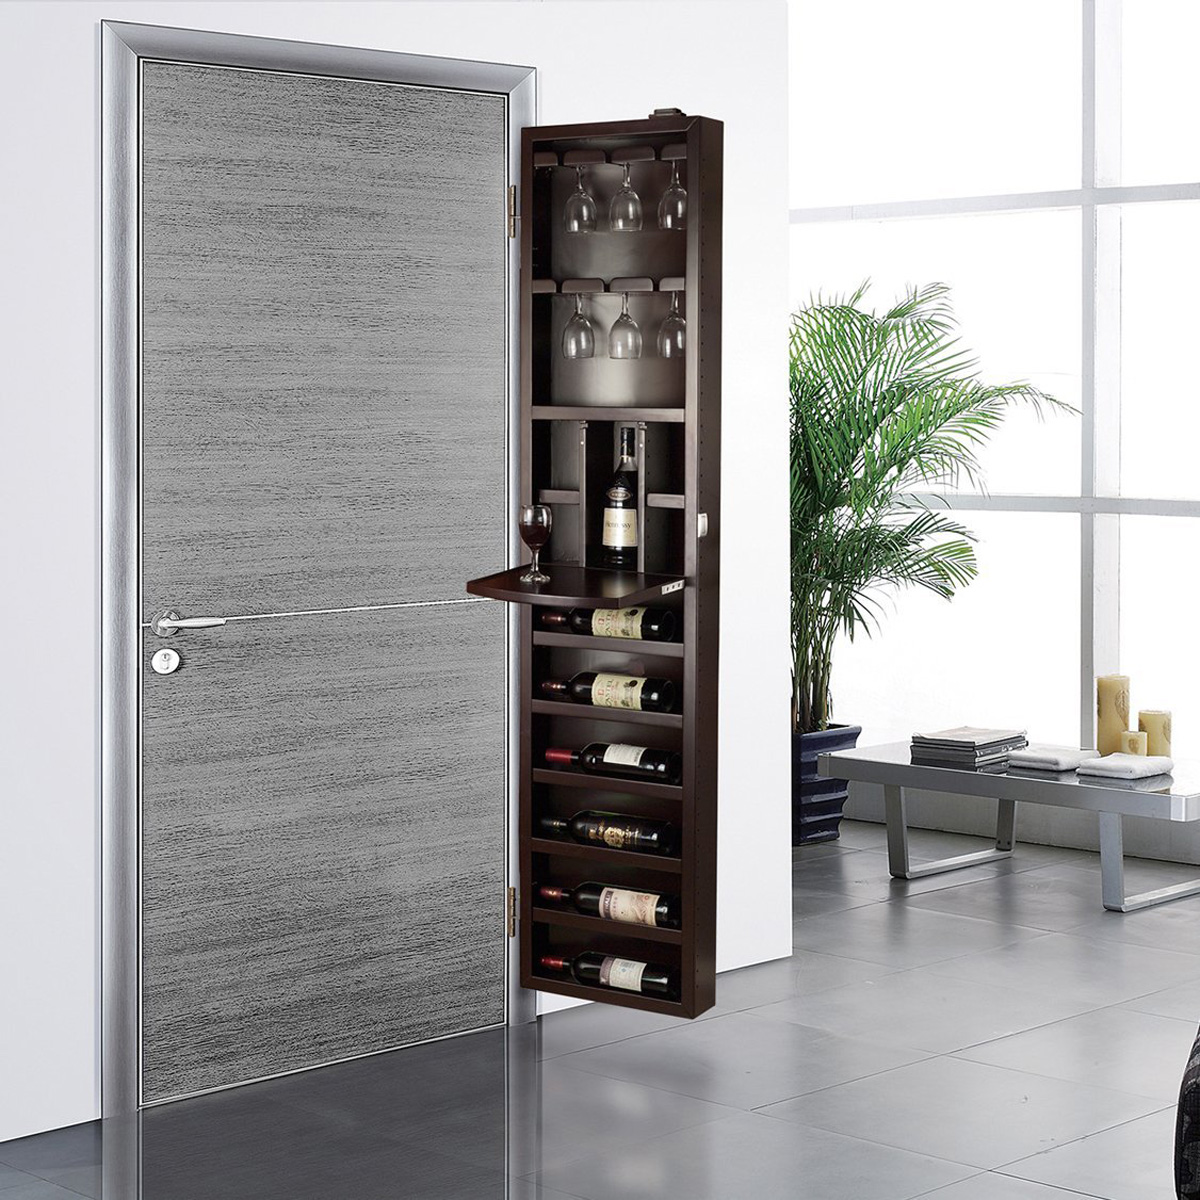 Le Meilleur Cabidor Behind The Door Wine Storage Cabinet The Green Ce Mois Ci